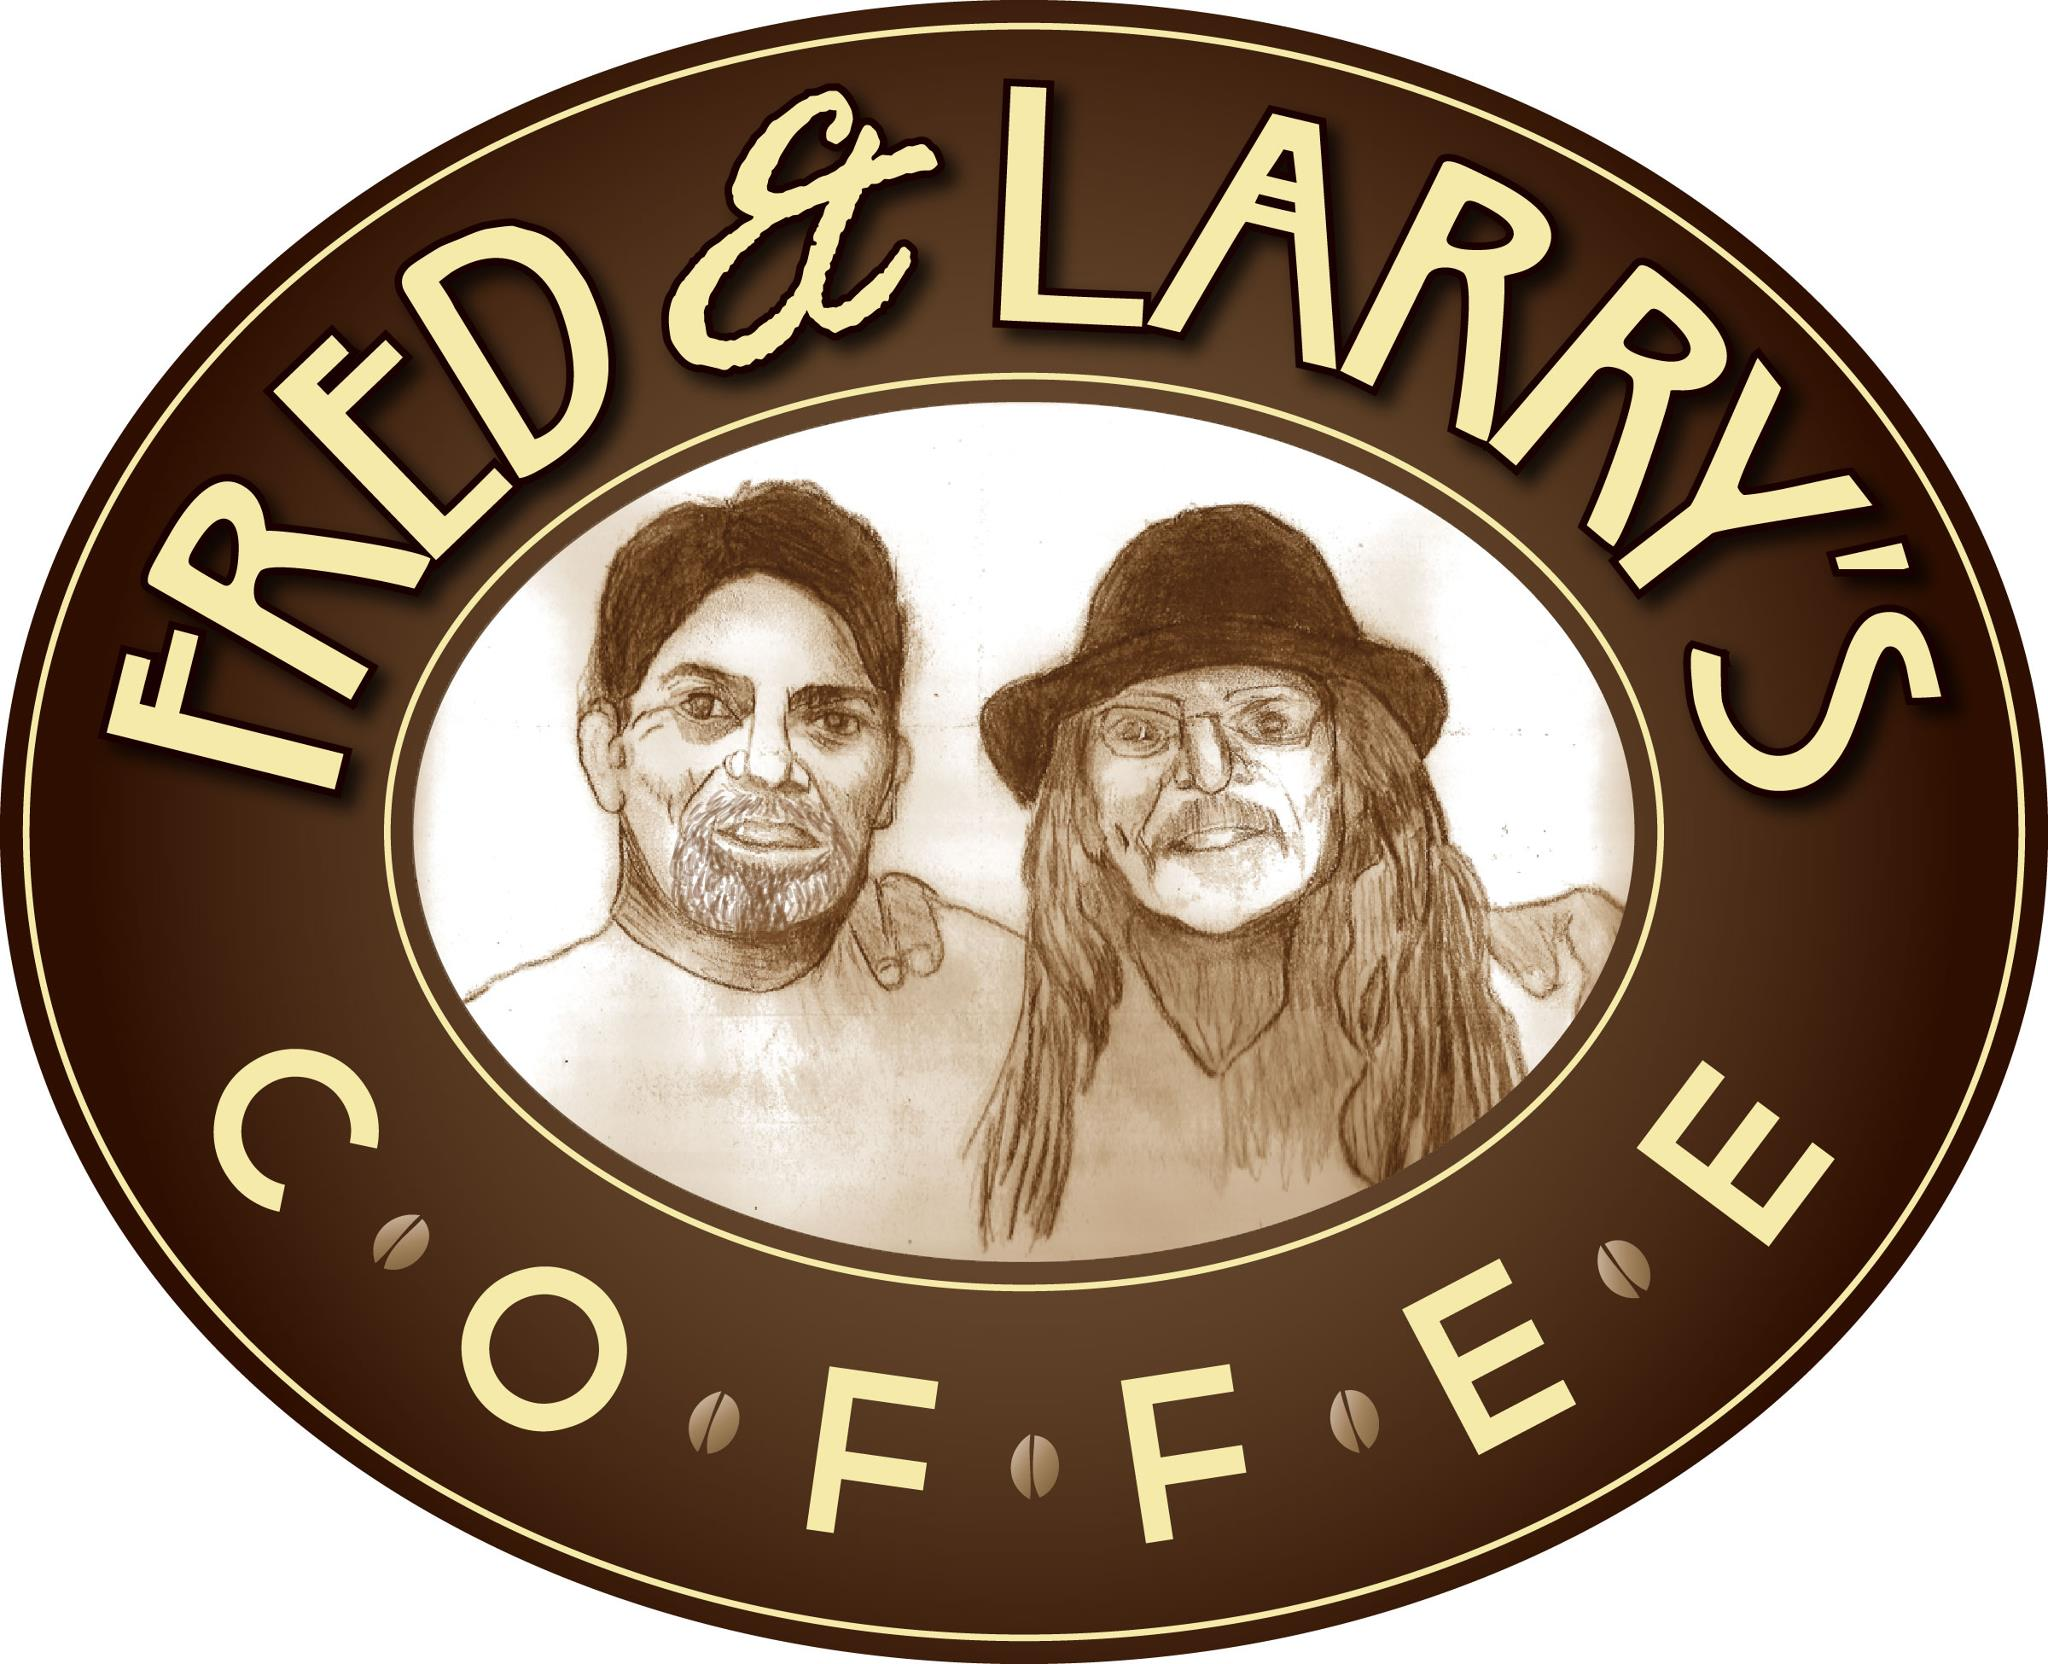 Fred & Larry's Coffee